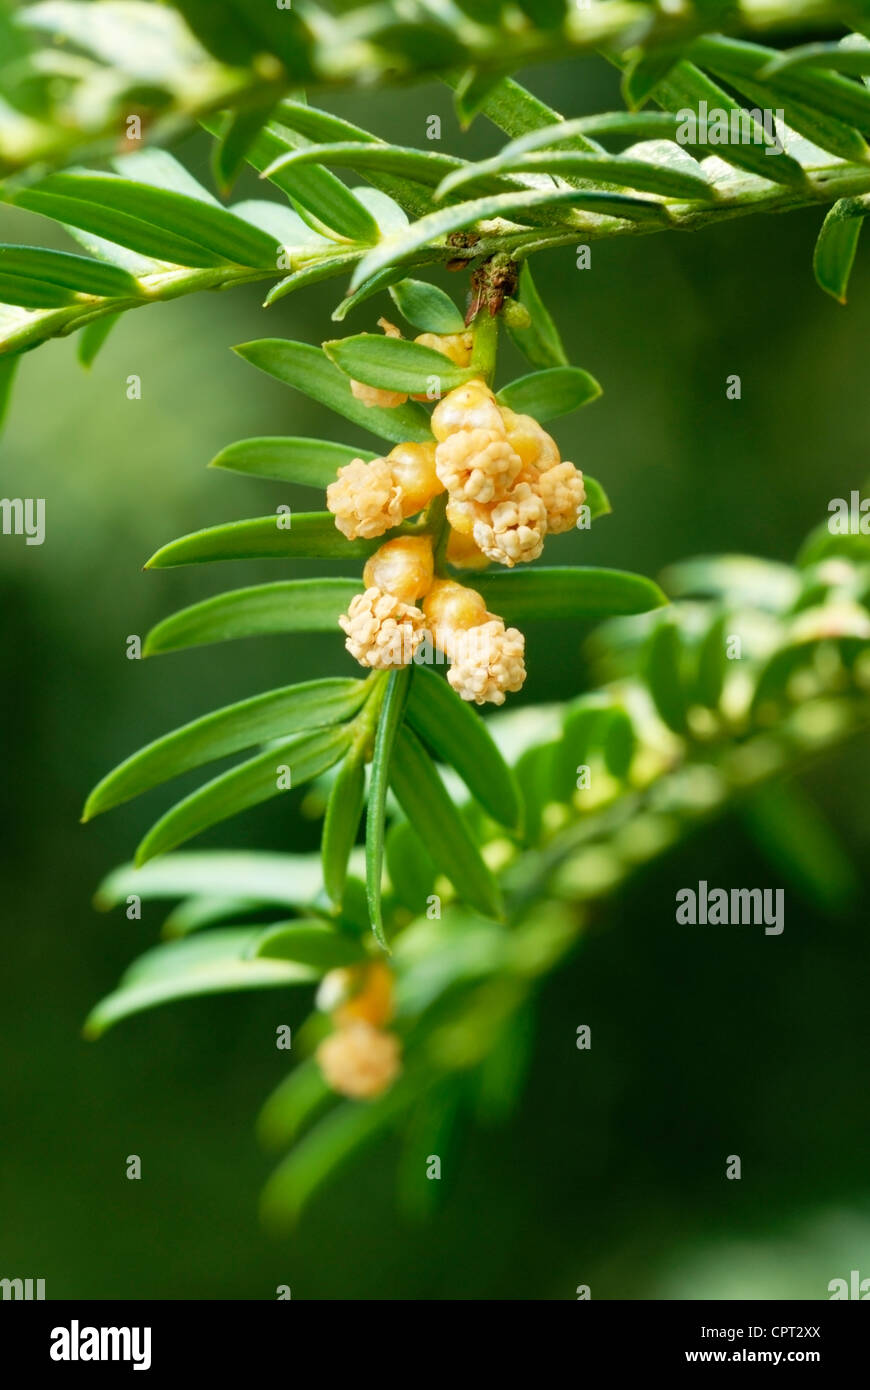 Taxus baccata, male flowers of the Yew tree - Stock Image